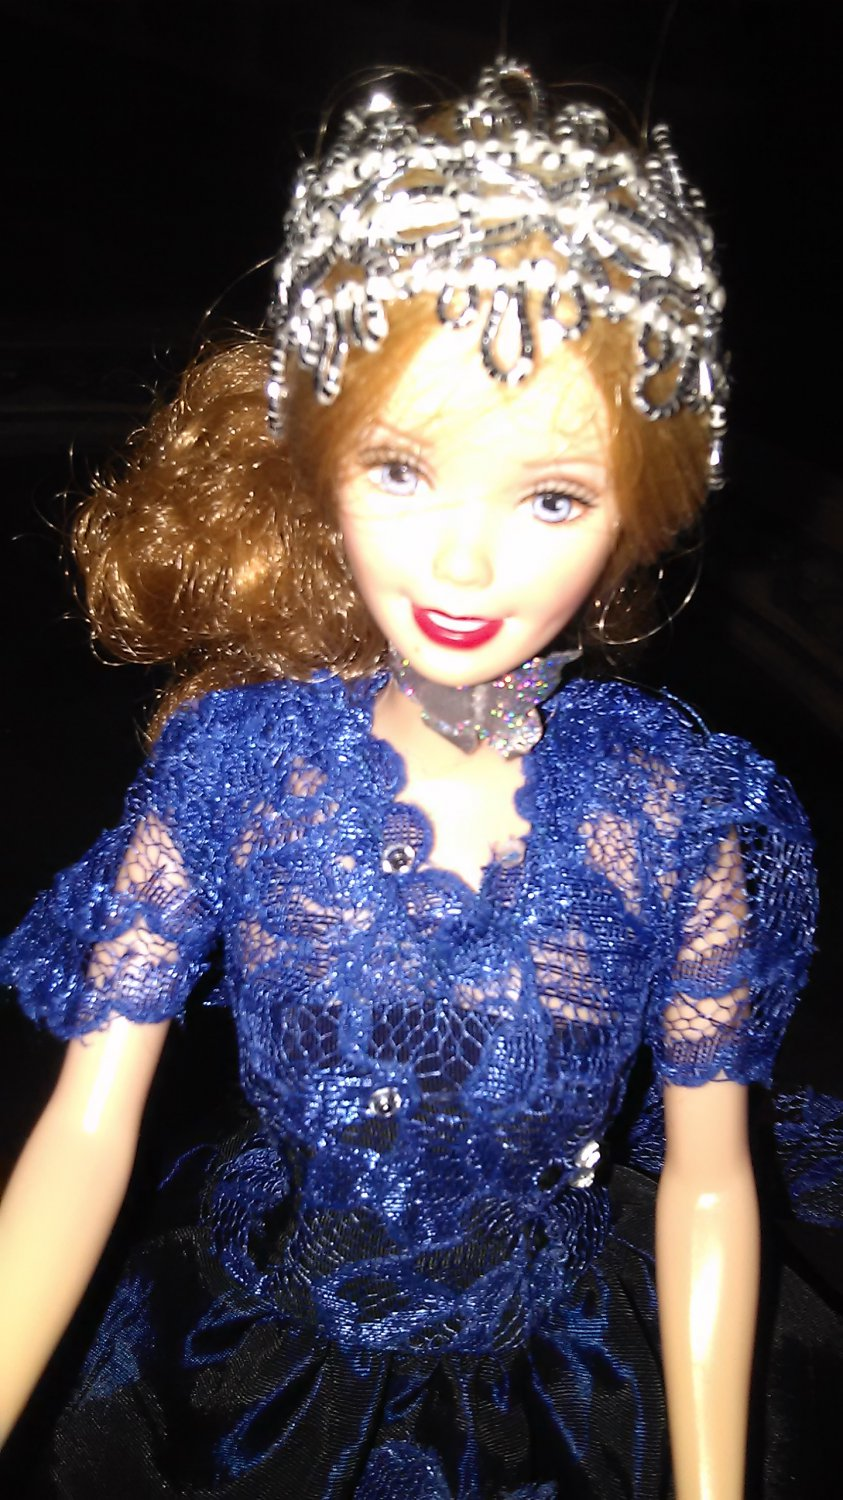 BARBIE MONACO PRINCESS Doll Fashion Handmade Party Wedding Outfit Navy Blue Lace Dress  GIFT